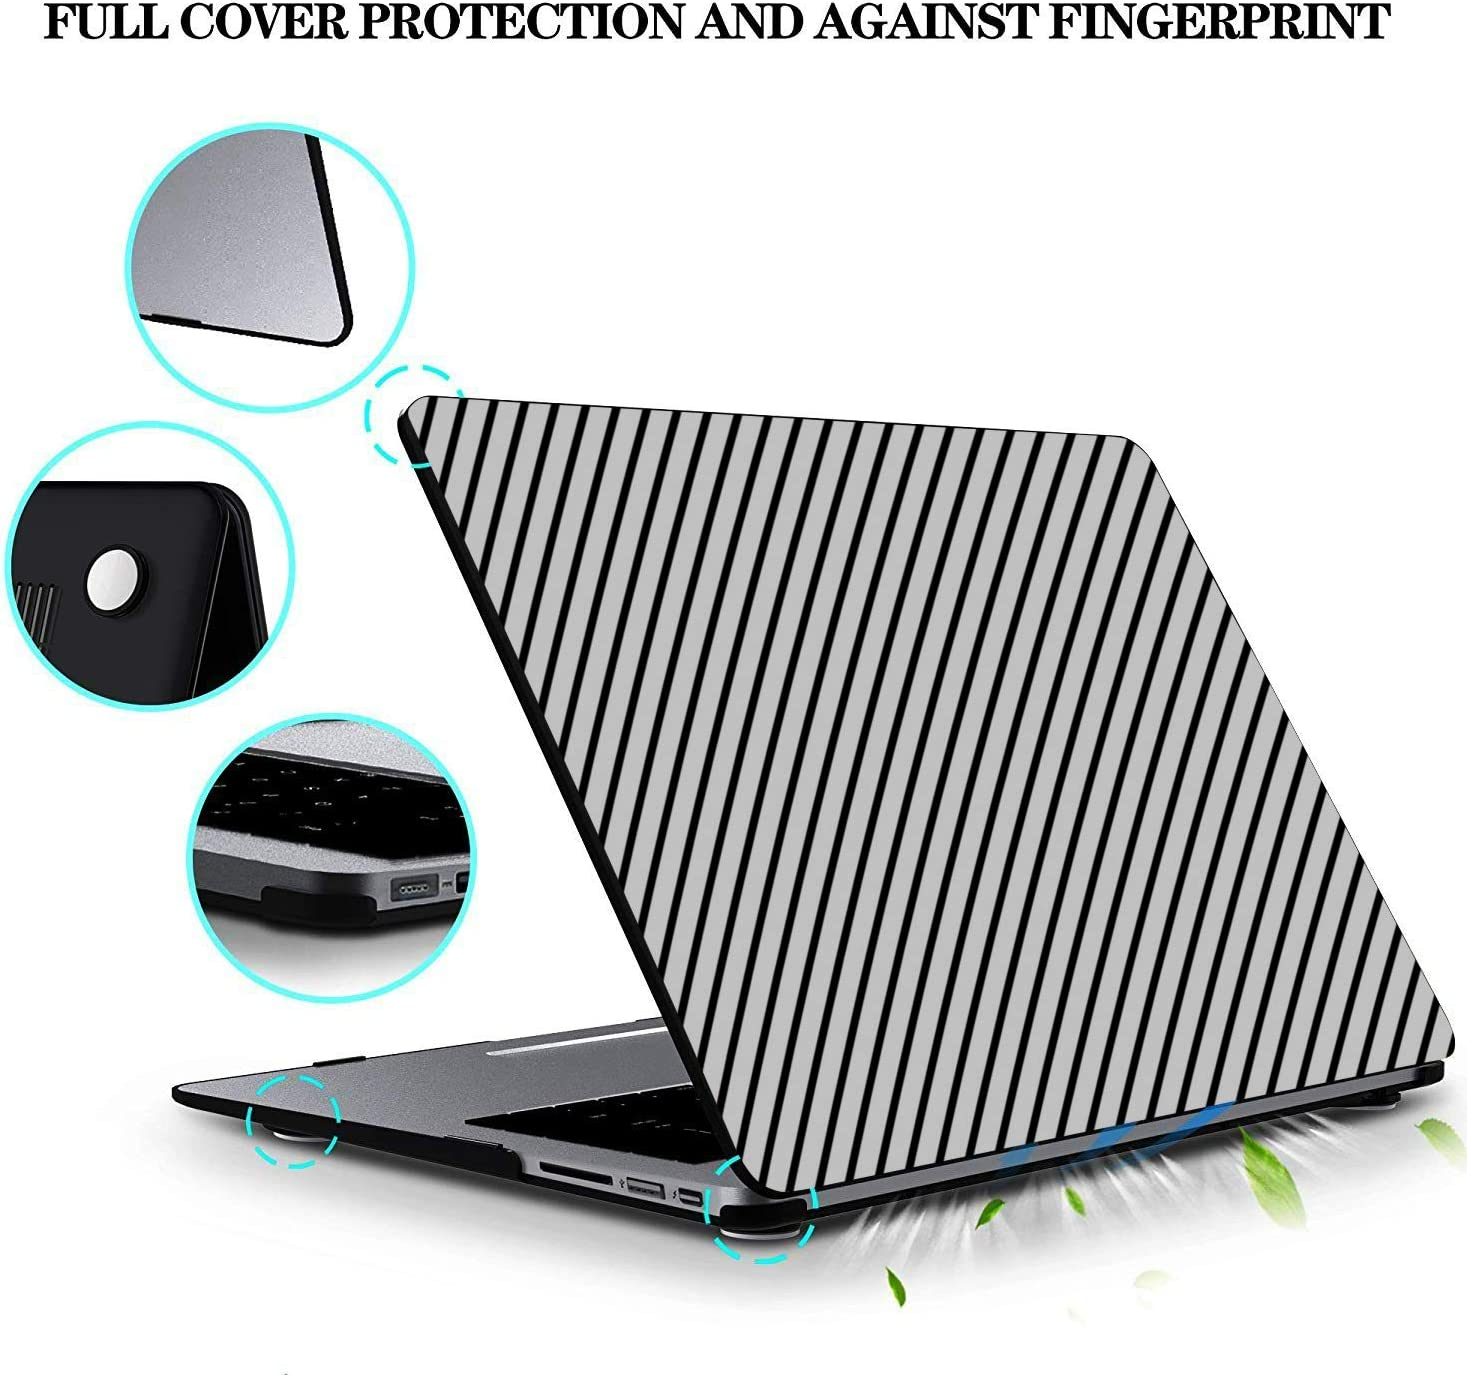 Mac Book Pro Cases Colorful Diagonal Stripes Popular Plastic Hard Shell Compatible Mac Air 11 Pro 13 15 2017 MacBook Pro Case Protection for MacBook 2016-2019 Version